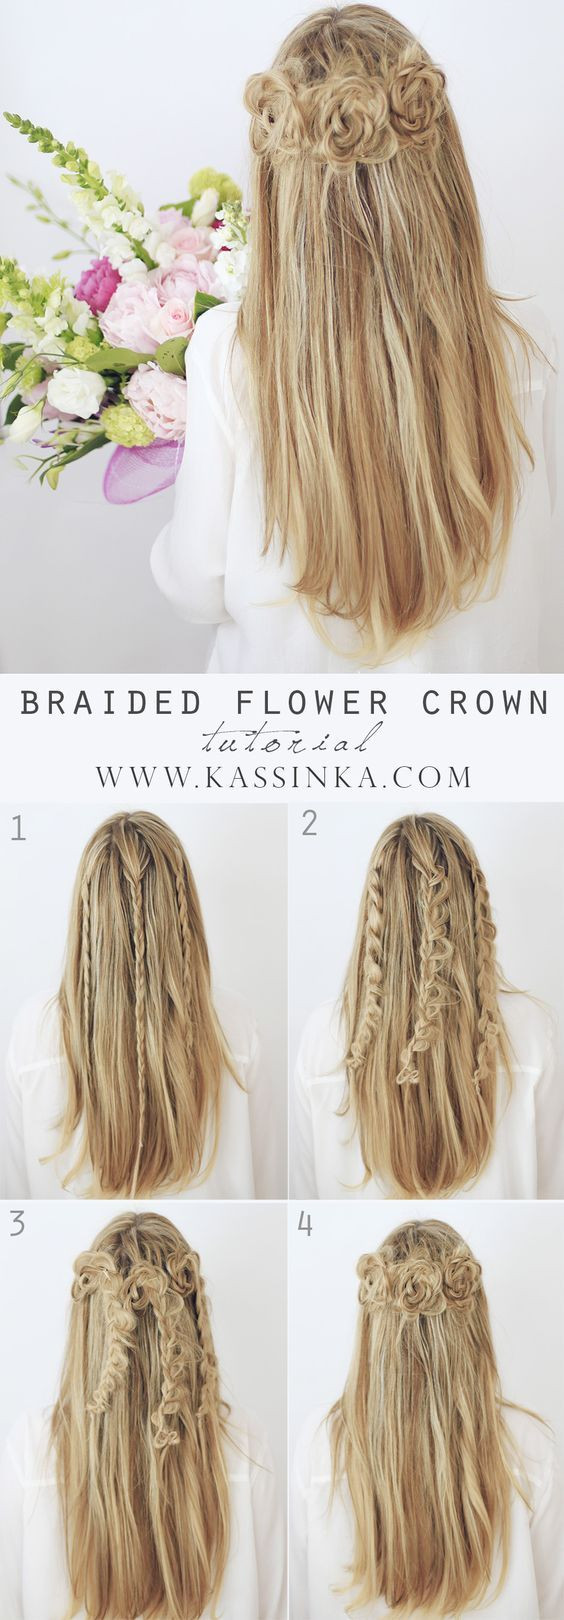 Best ideas about Cute Date Hairstyles . Save or Pin 25 best ideas about Date Hairstyles on Pinterest Now.